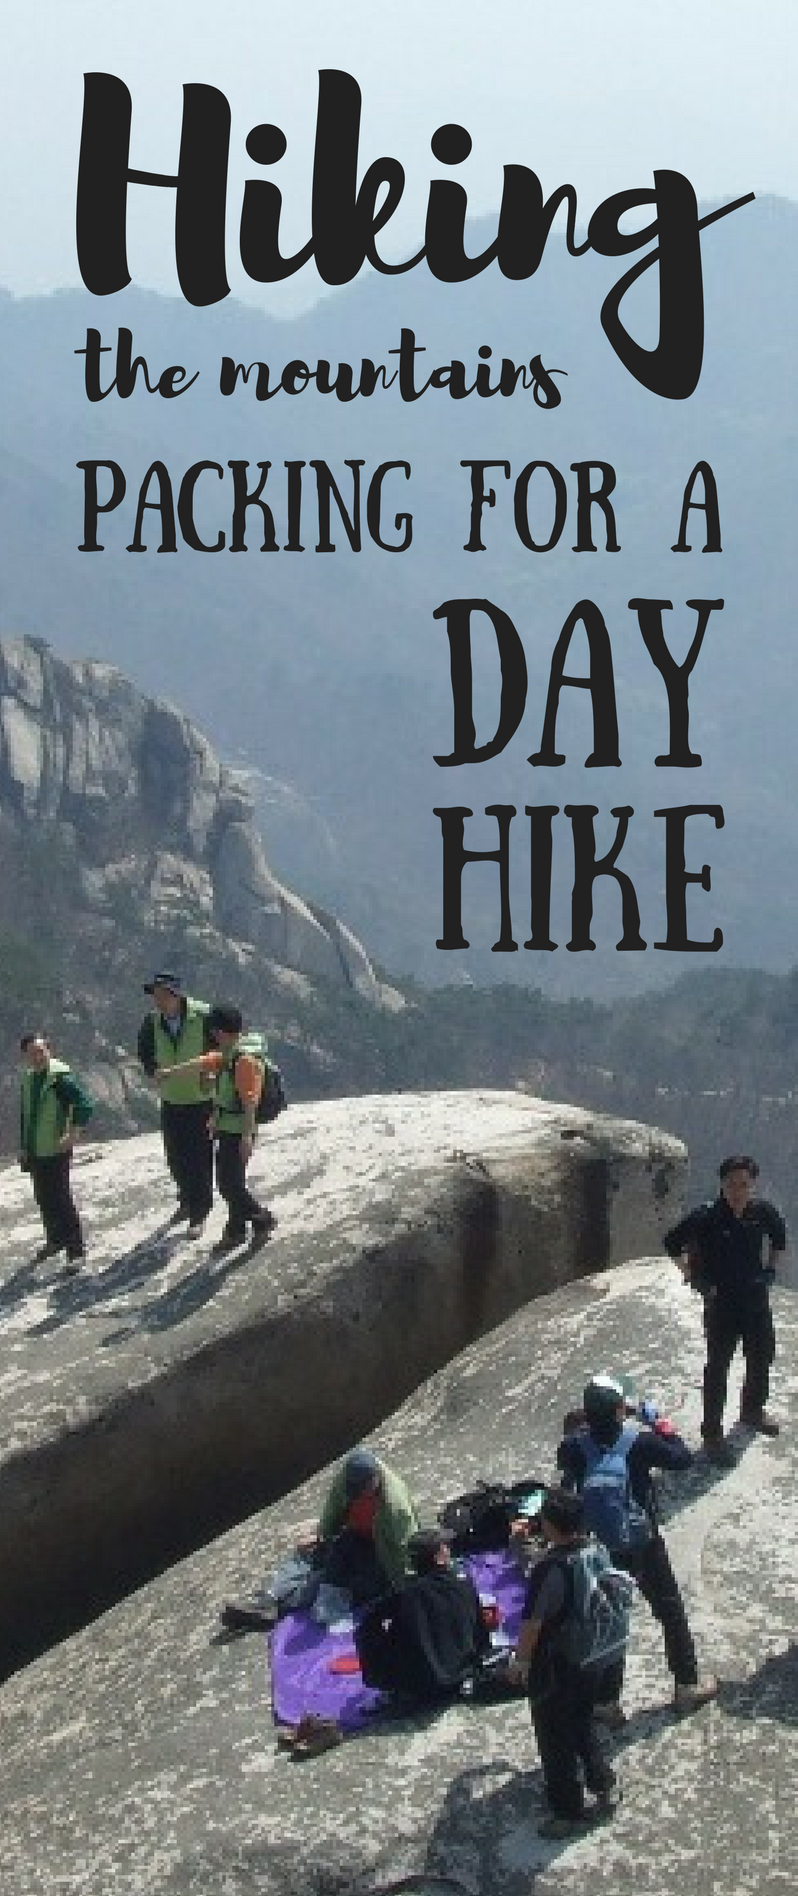 5573a8b973 hiking tips. packing for a day hike what to pack hiking essentials.  backpacking and camping.